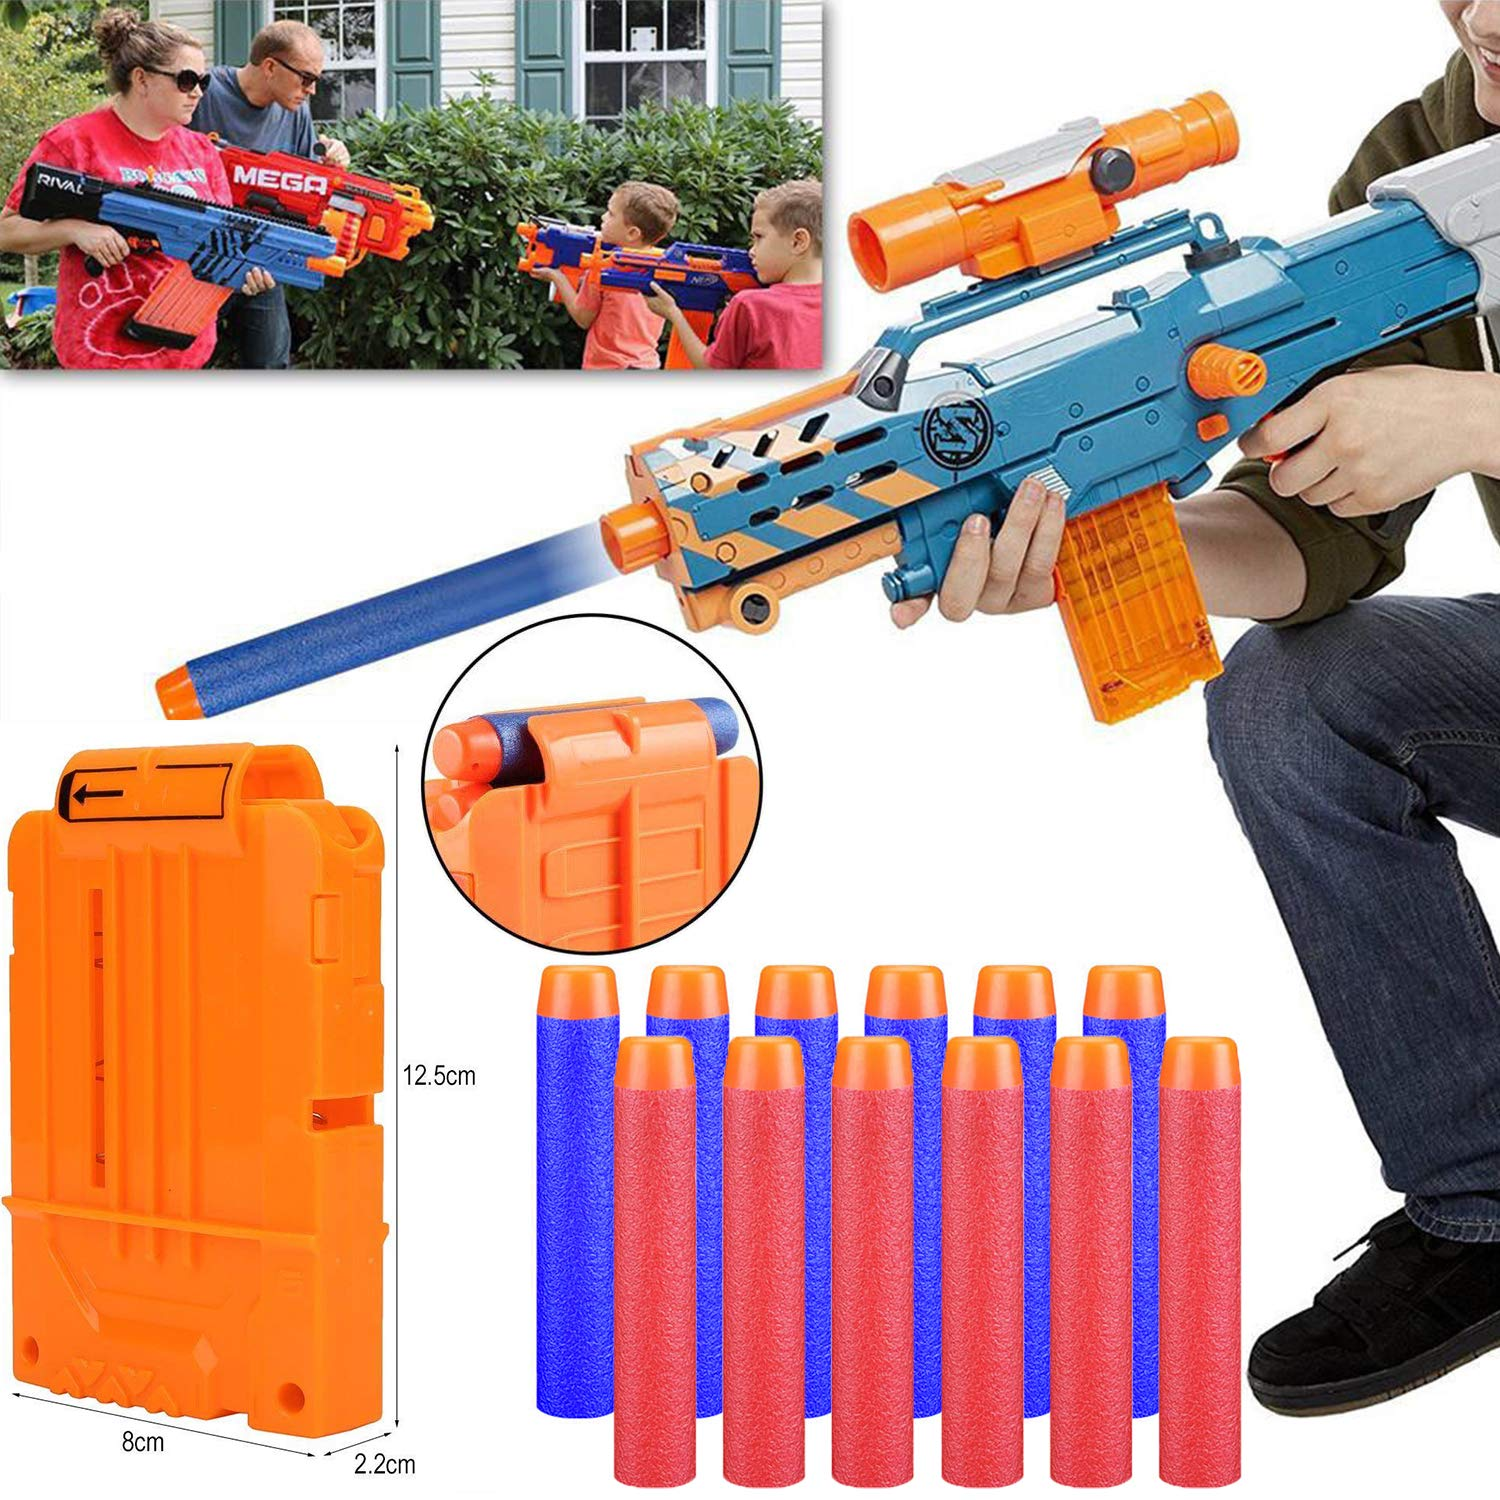 2 Reload Clips 2 Wrist Band and 2 Glasses Gift Wrapped ShineMore 2 Pack Kids Tactical Vest Kit for Nerf Guns N-Strike Elite Series with 80Pcs Refill Darts 2 Tactical Mask